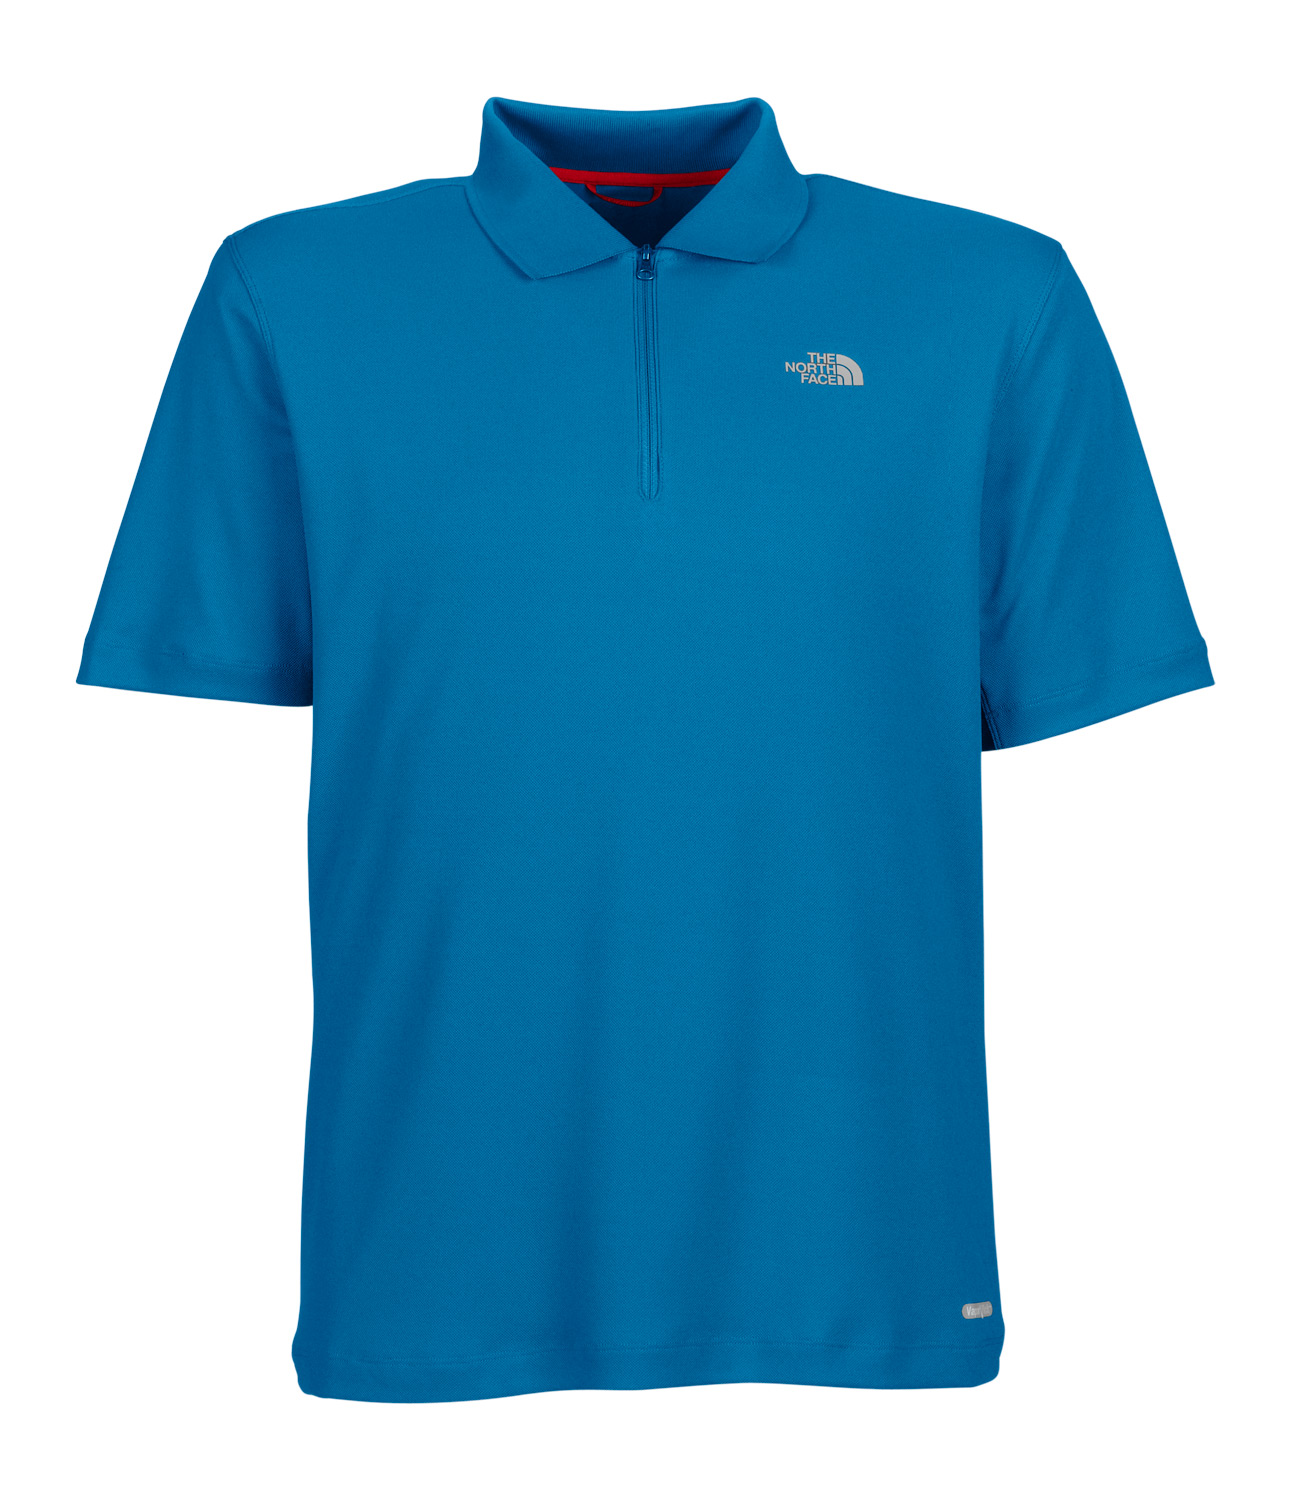 Key Features of The North Face Logo Polo Polo Shirt: Coolmax fabric pulls moisture away from skin keeping you dry UPF 30 sun protection Reverse-coil quarter zip Underarm gussets improve mobility The North Face logo on left chest Quick-drying - $30.95